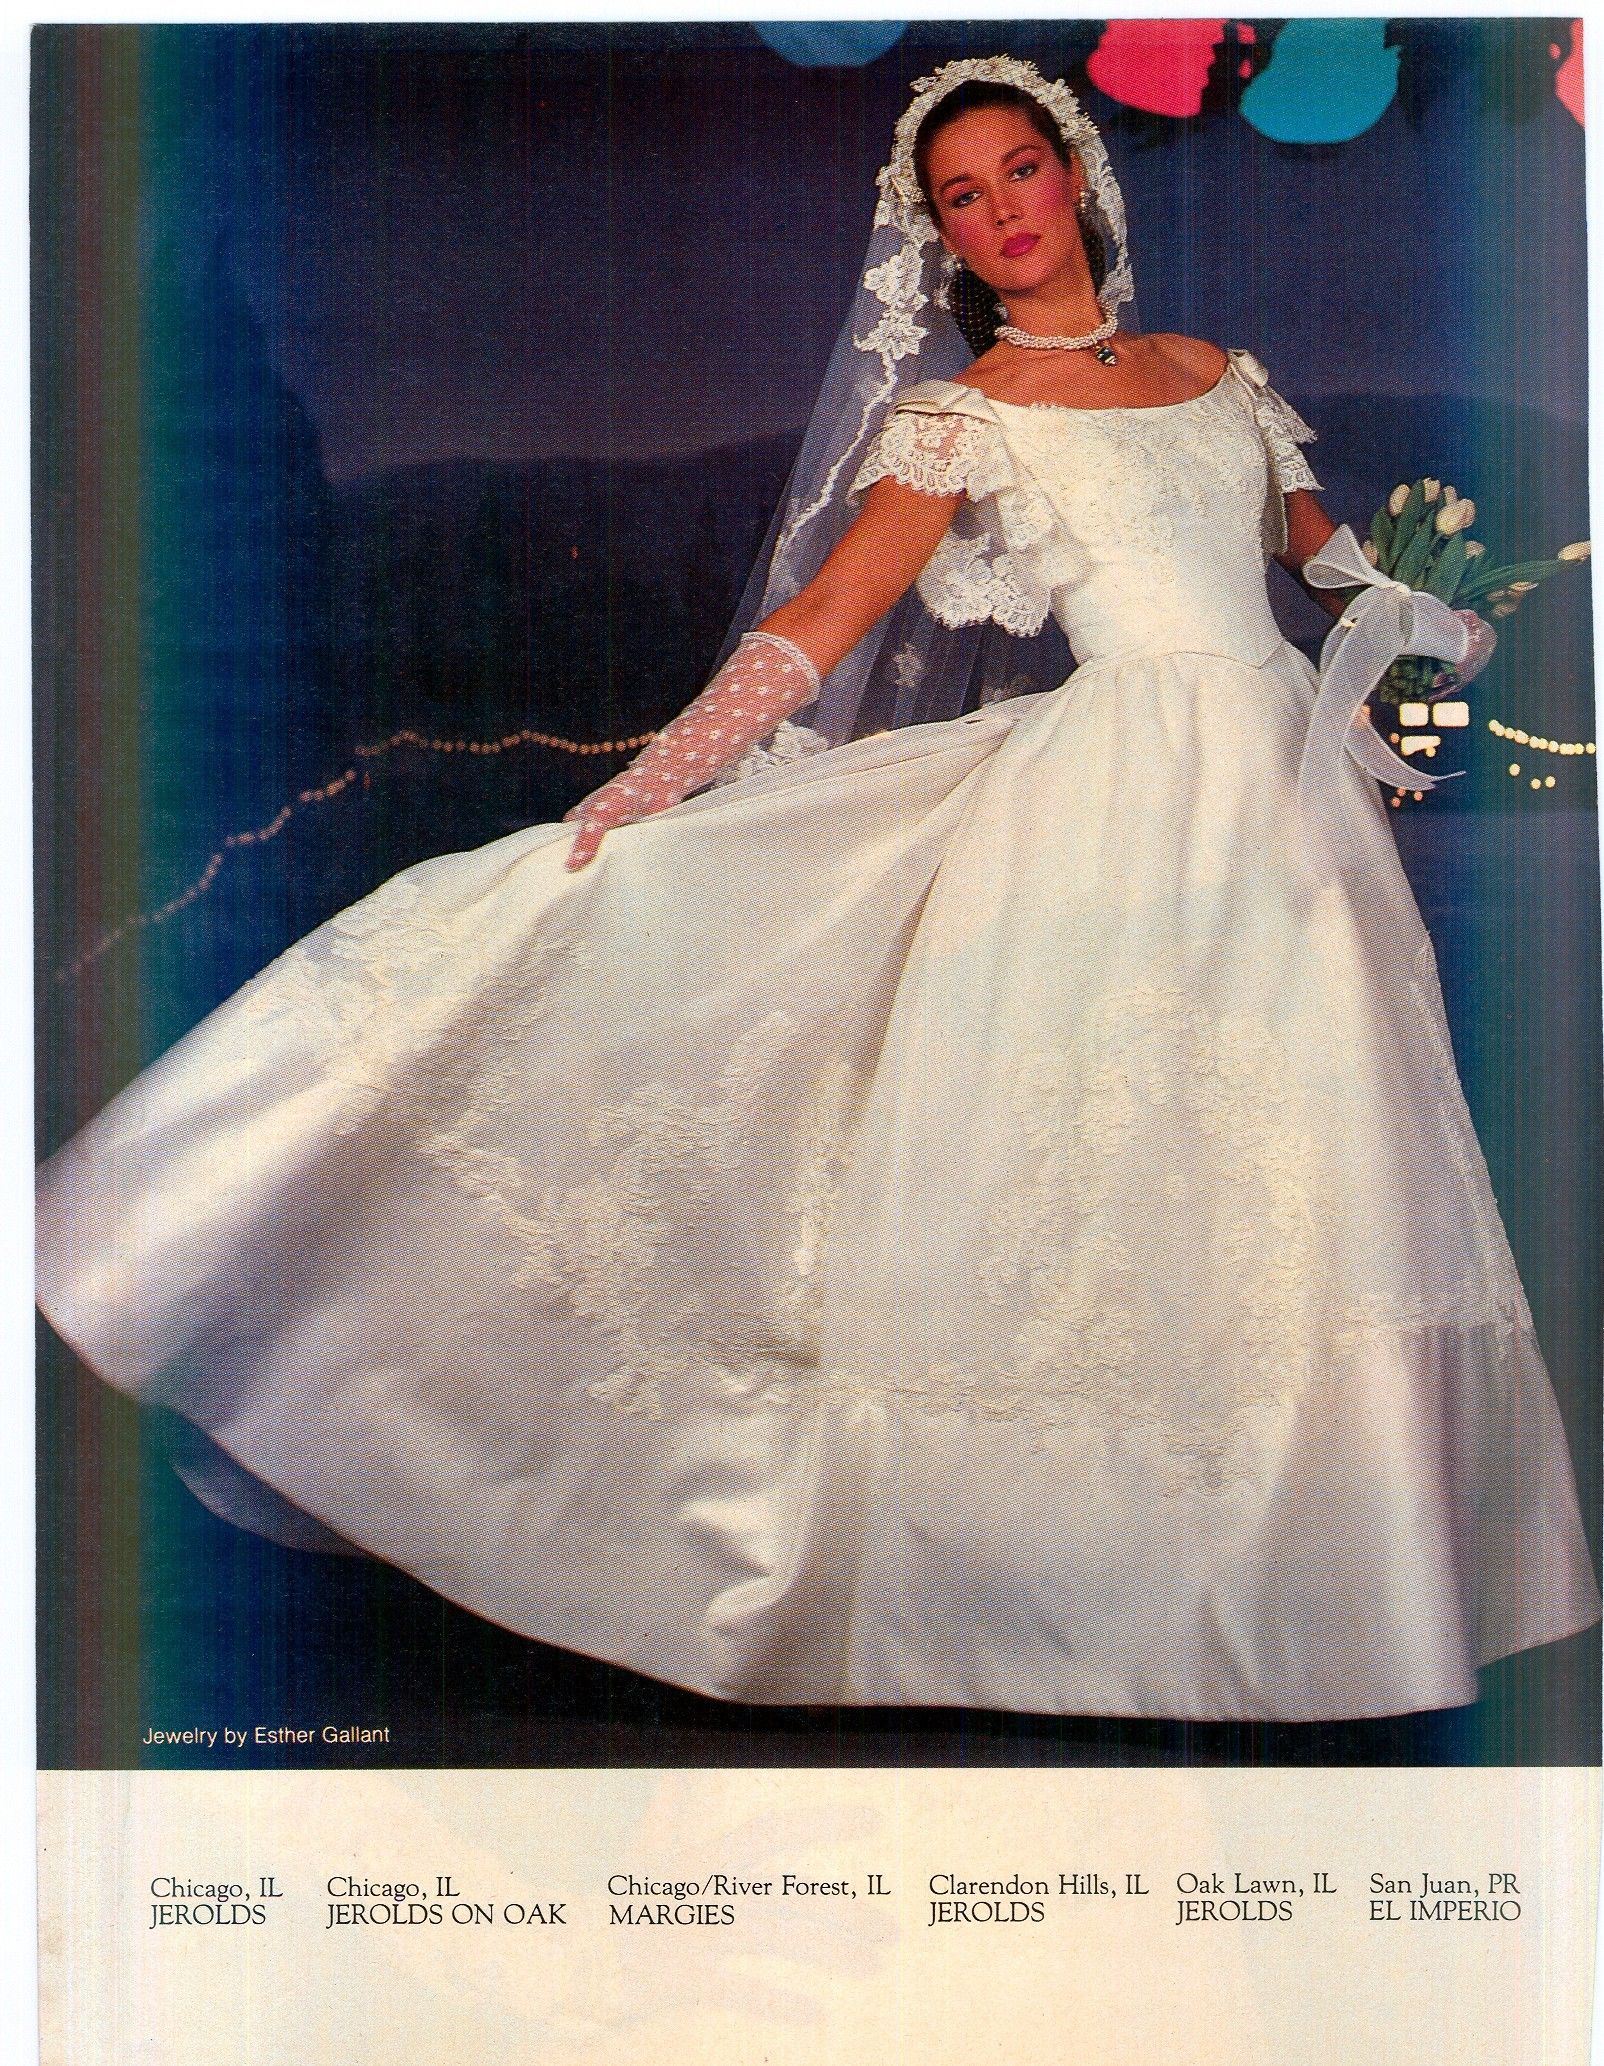 Reflections/Eve of Milady 1983 | 1980s Wedding Gowns | Pinterest ...